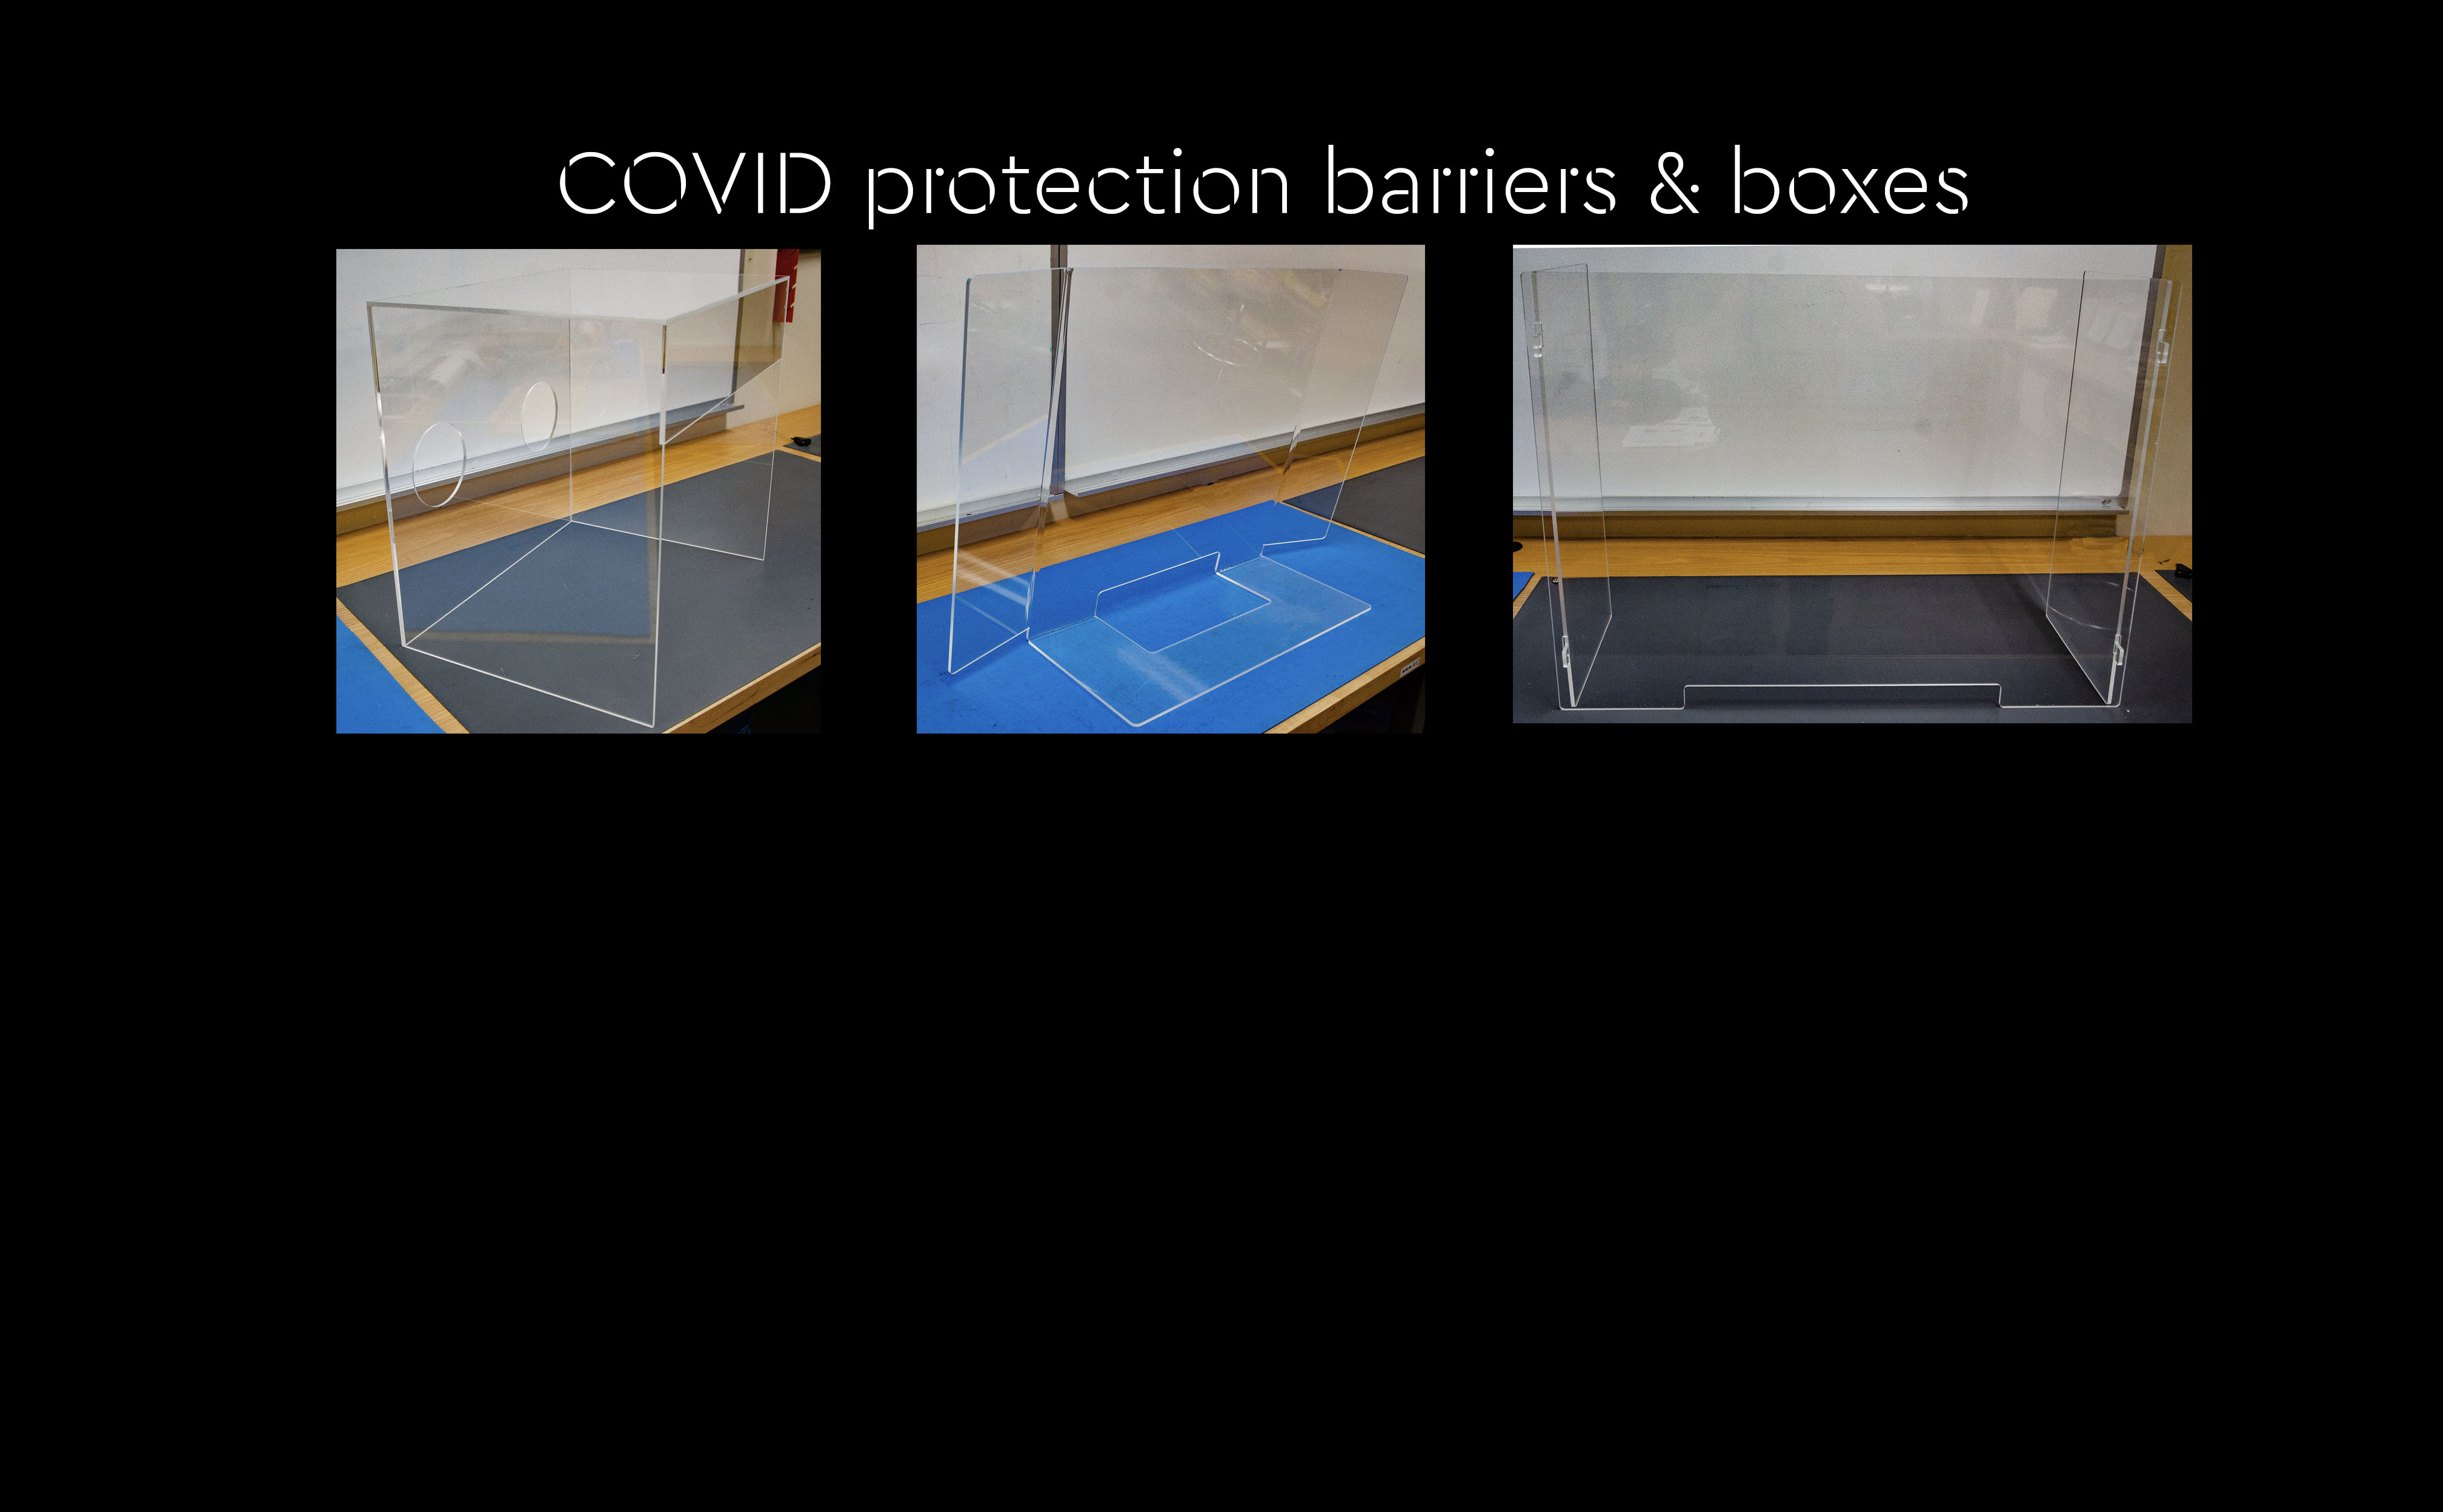 COVID Protection Barriers & Intubation boxes